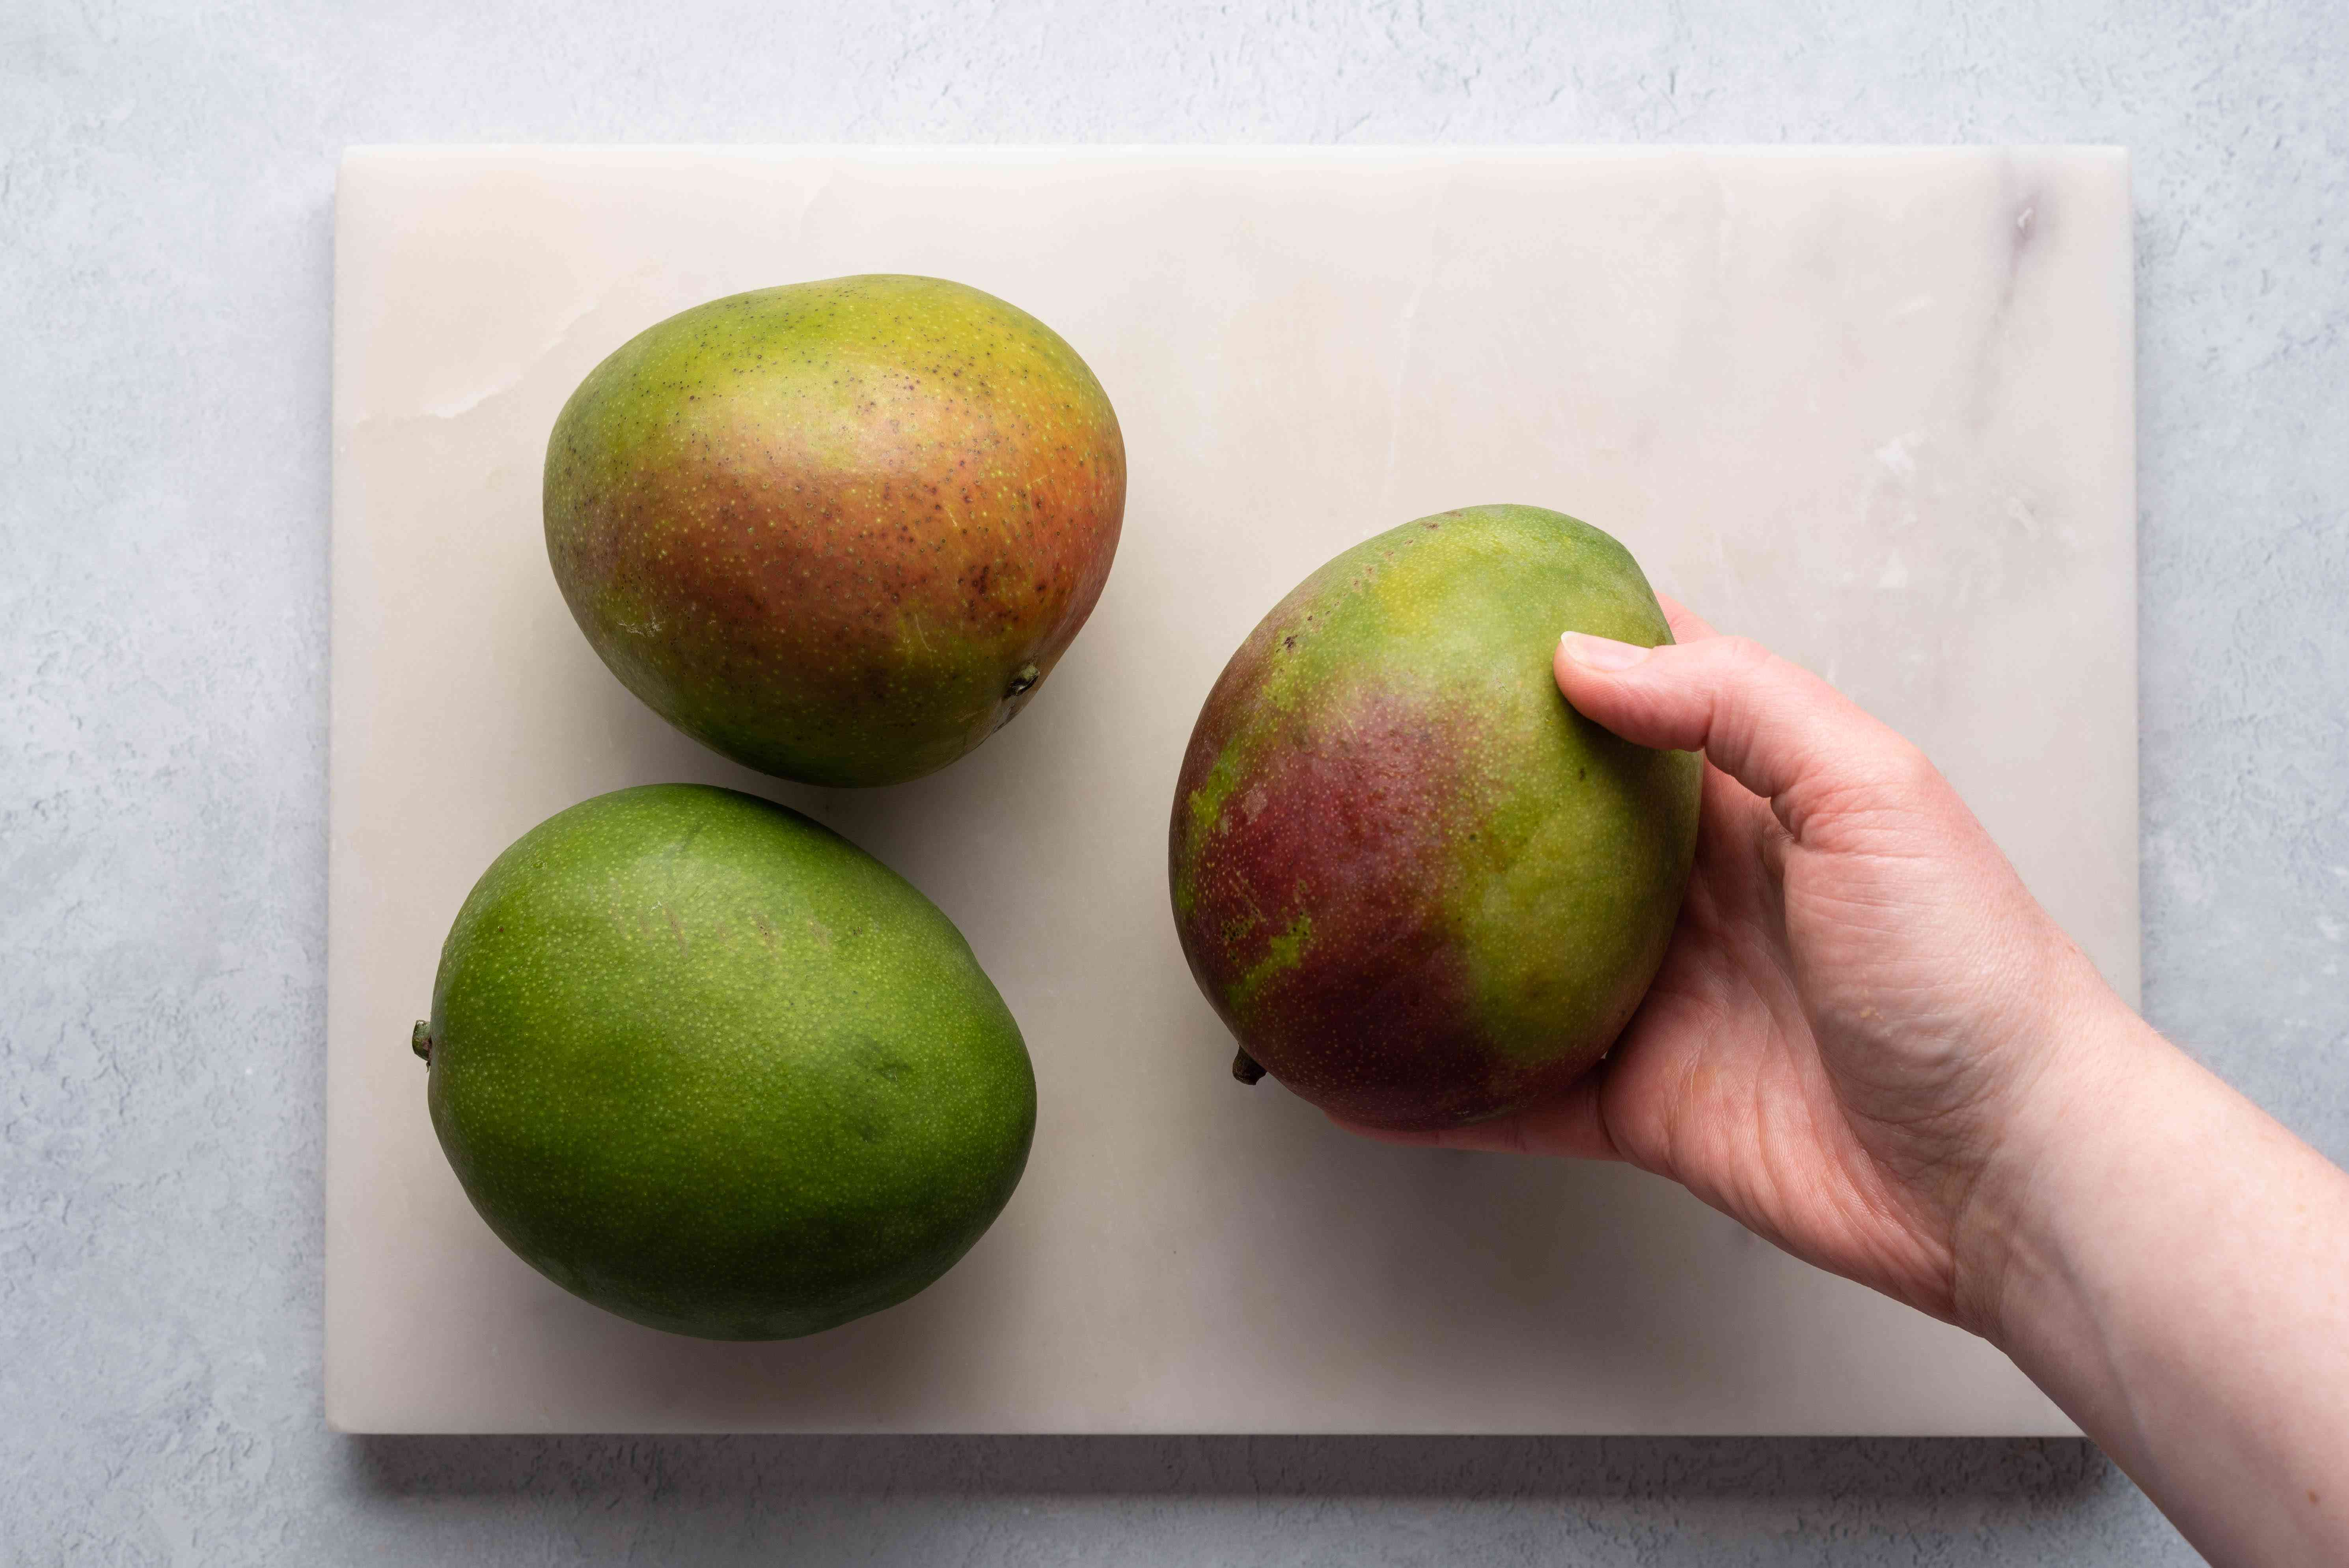 mangoes on a cutting board